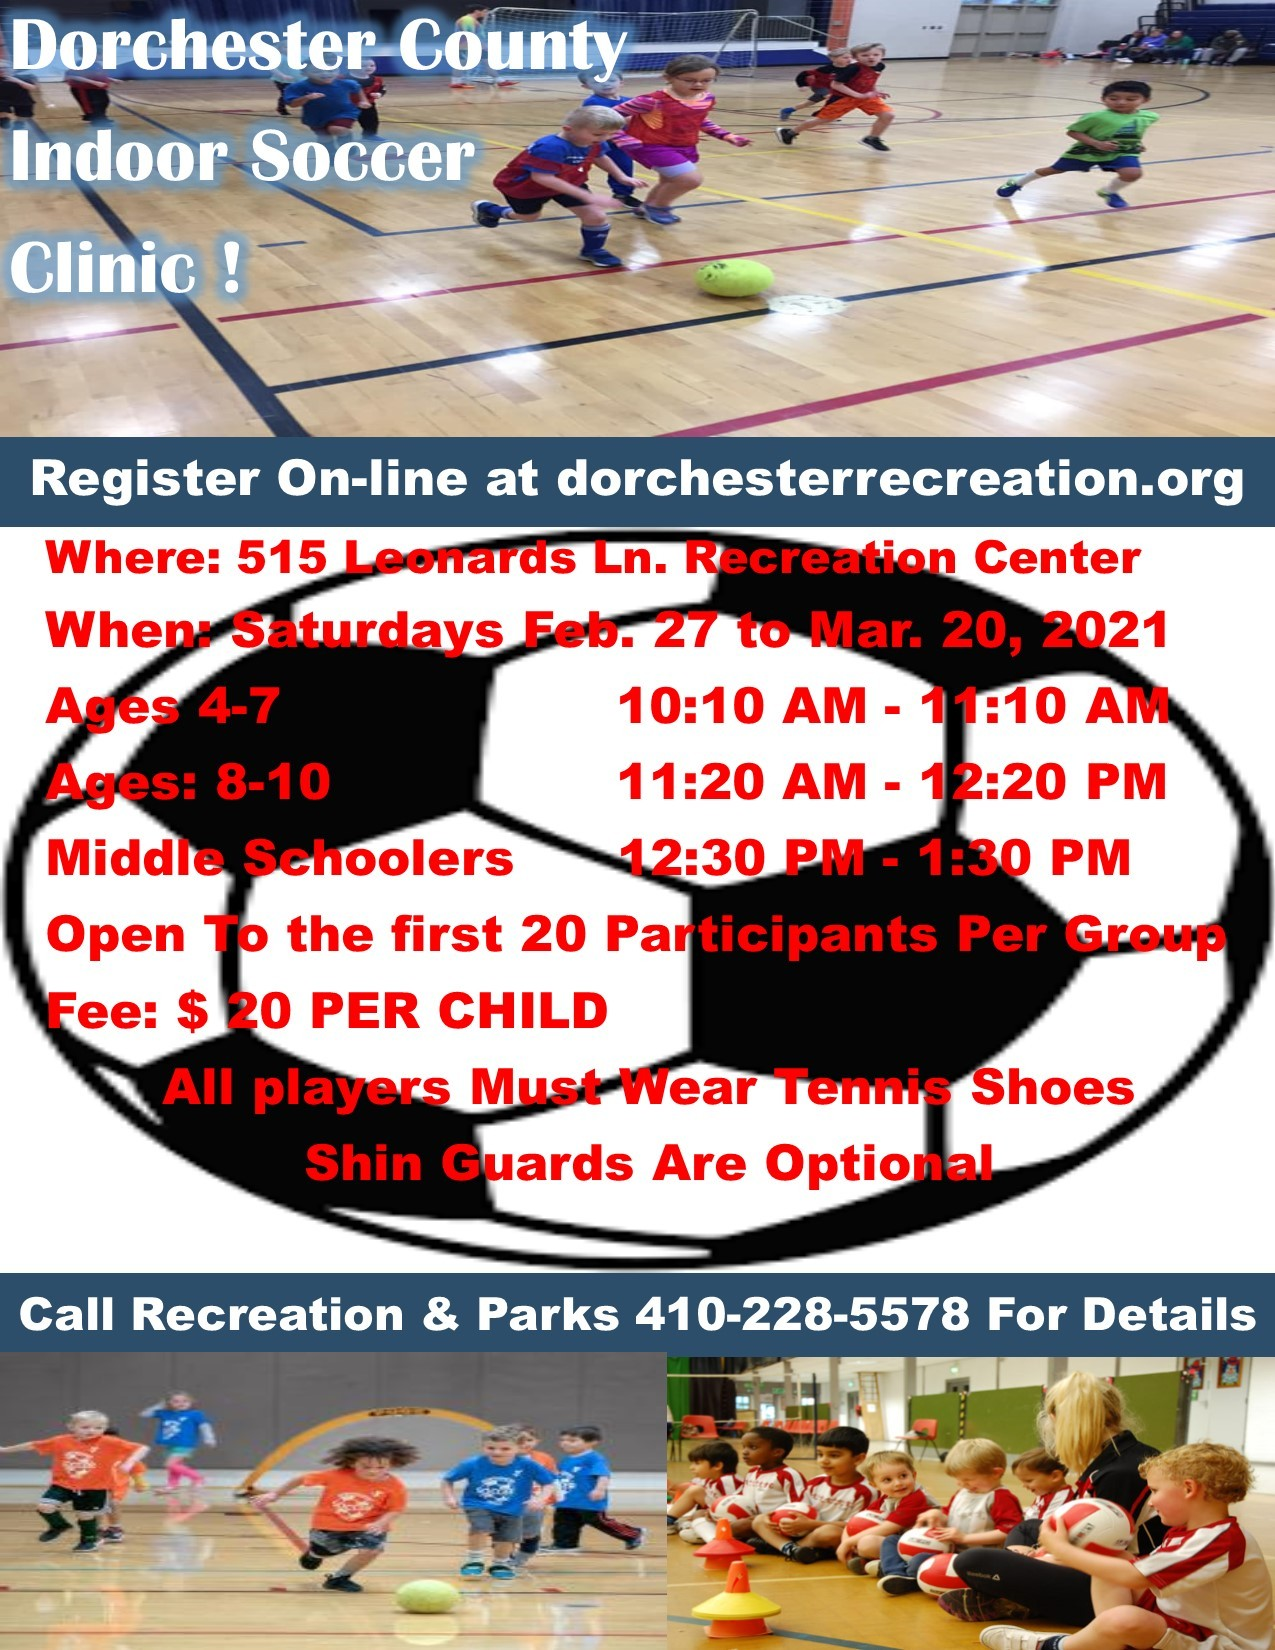 Dorchester County INDOOR YOUTH SOCCER CLINIC